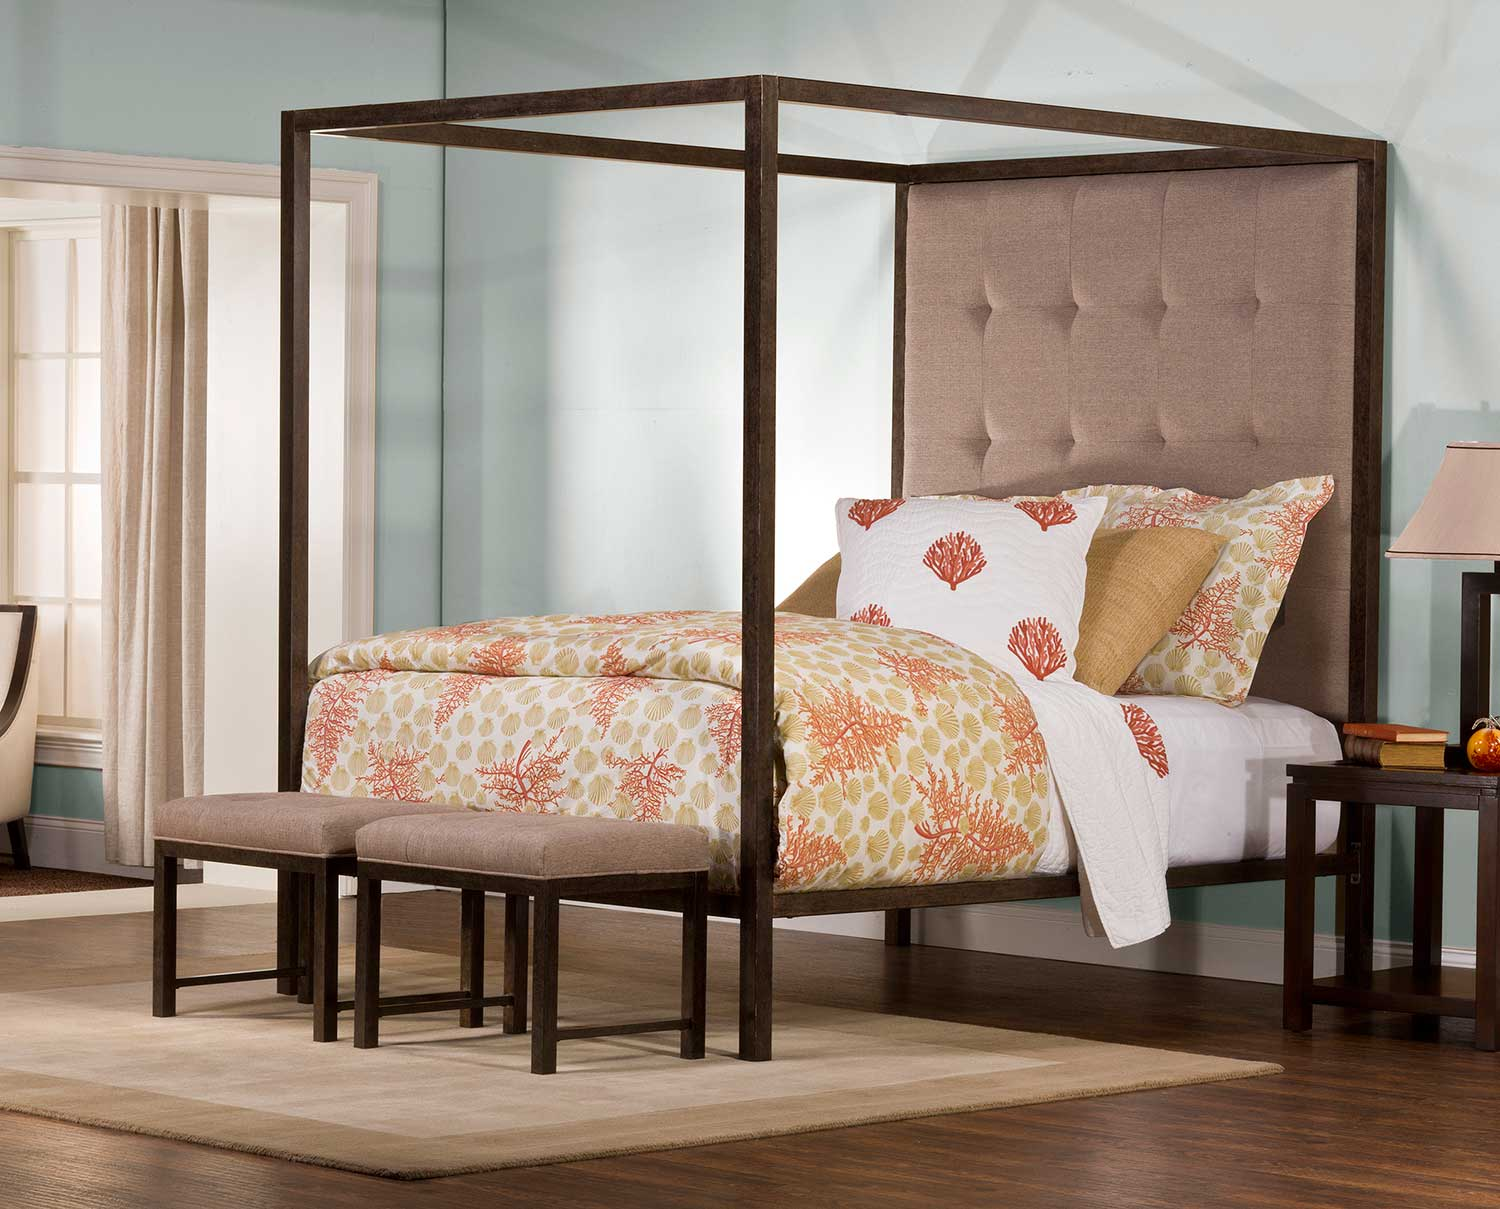 Hillsdale King's Way Canopy Bed - Aged Steel - Oatmeal Linen